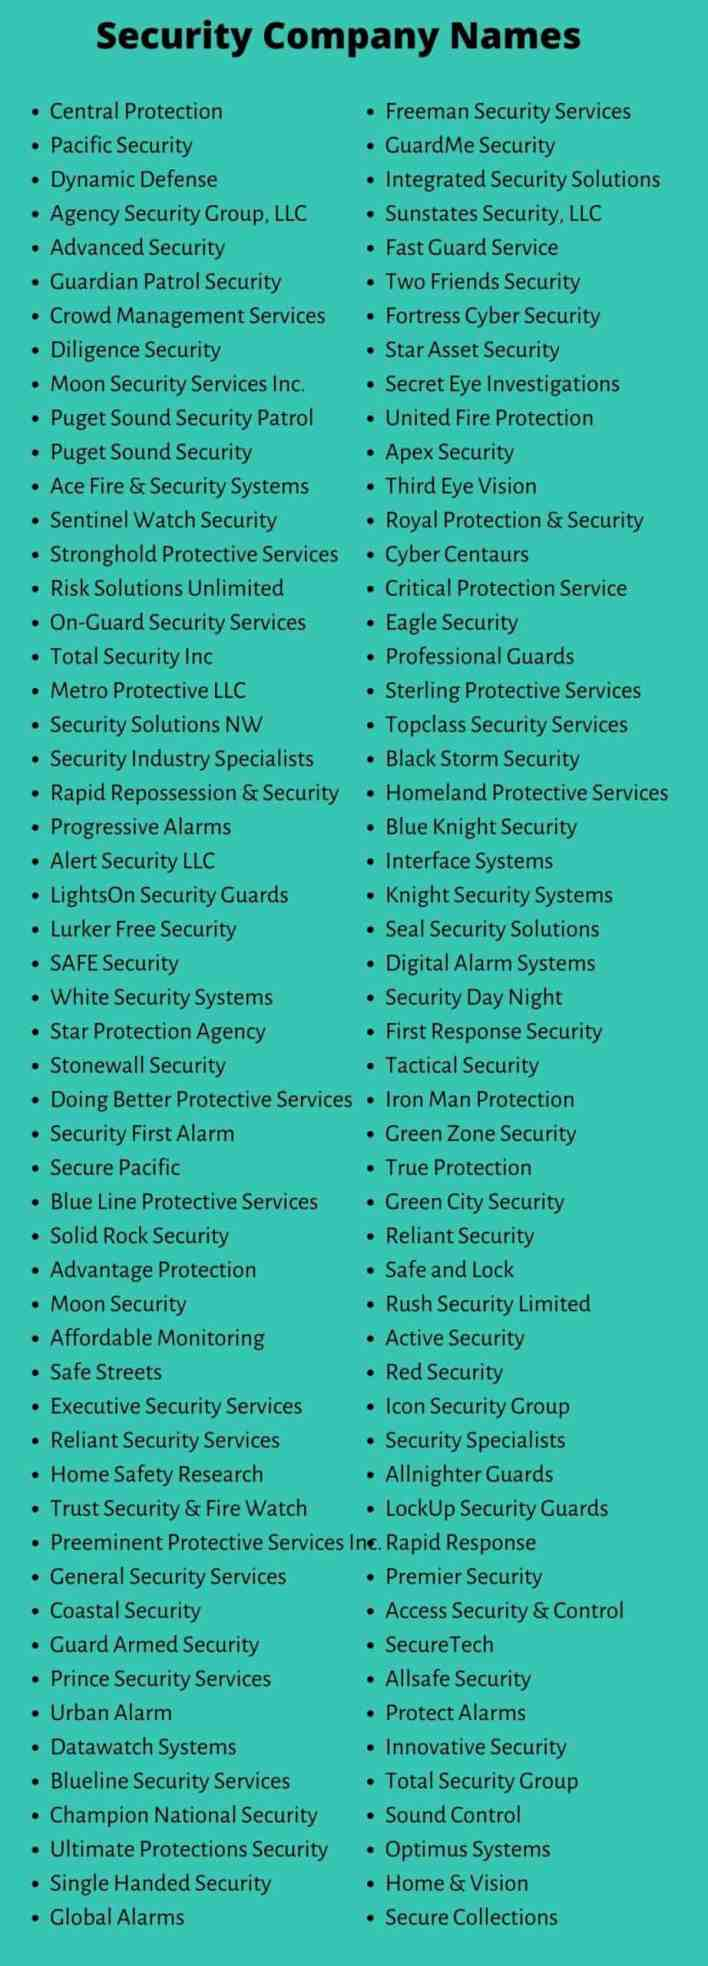 Security Company Names